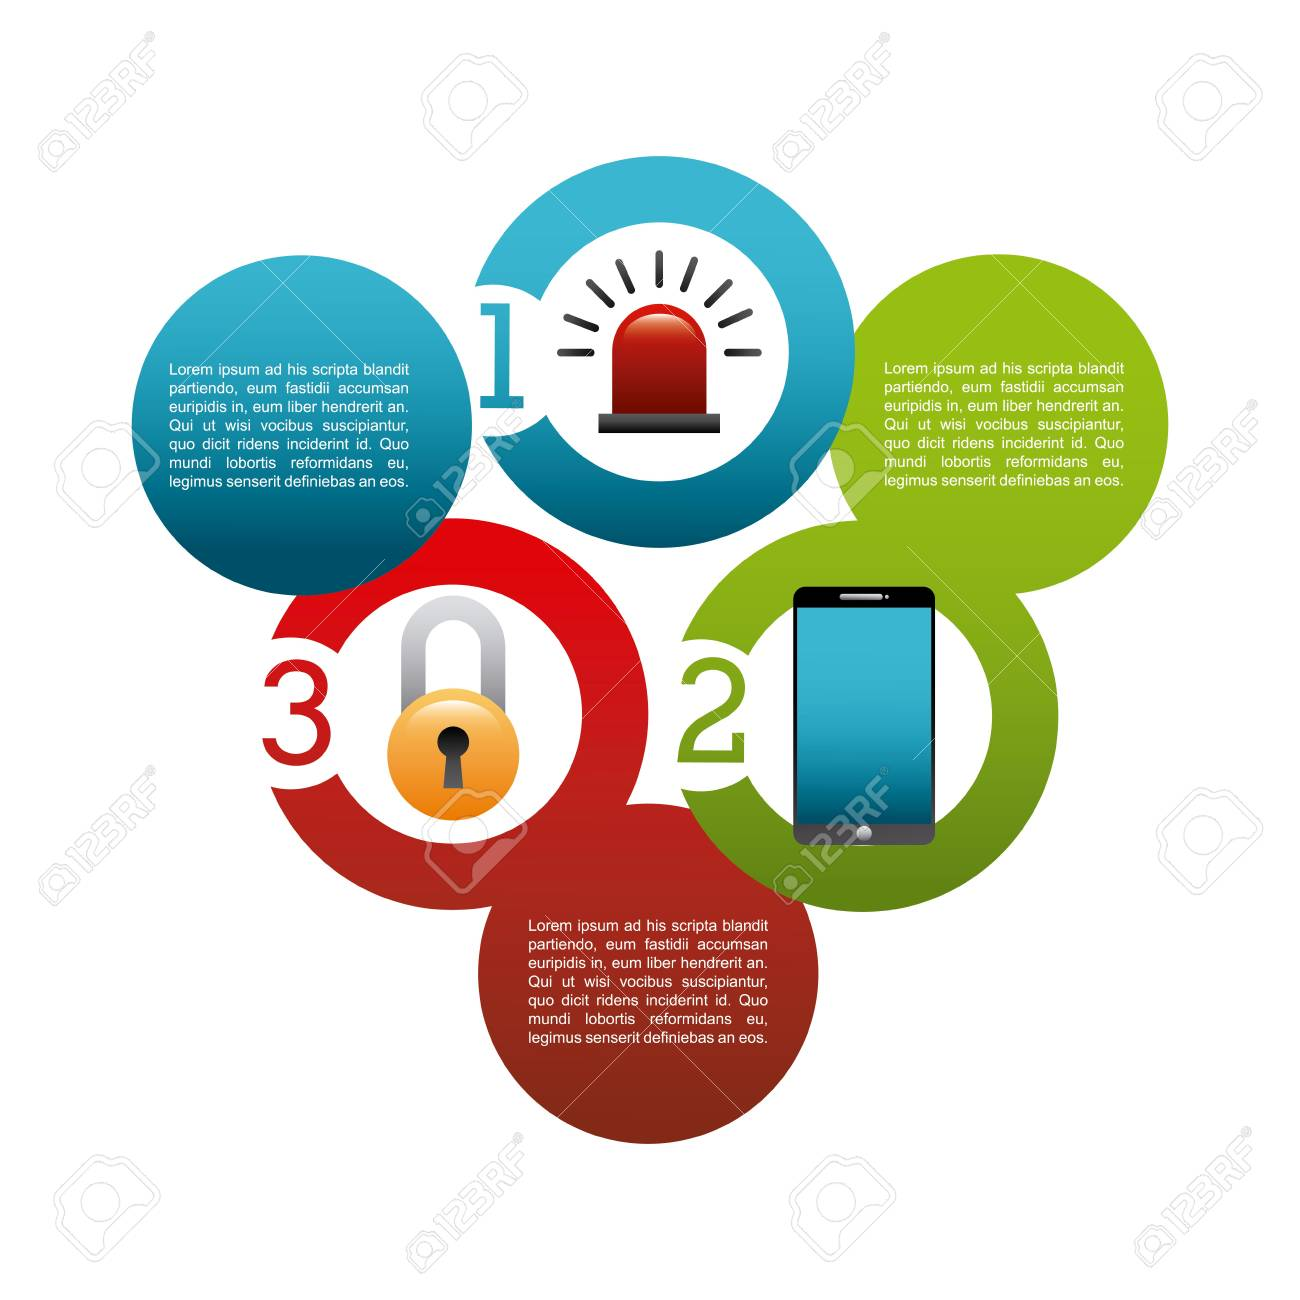 Web Security Clipart Infographic-Web Security Clipart infographic-13